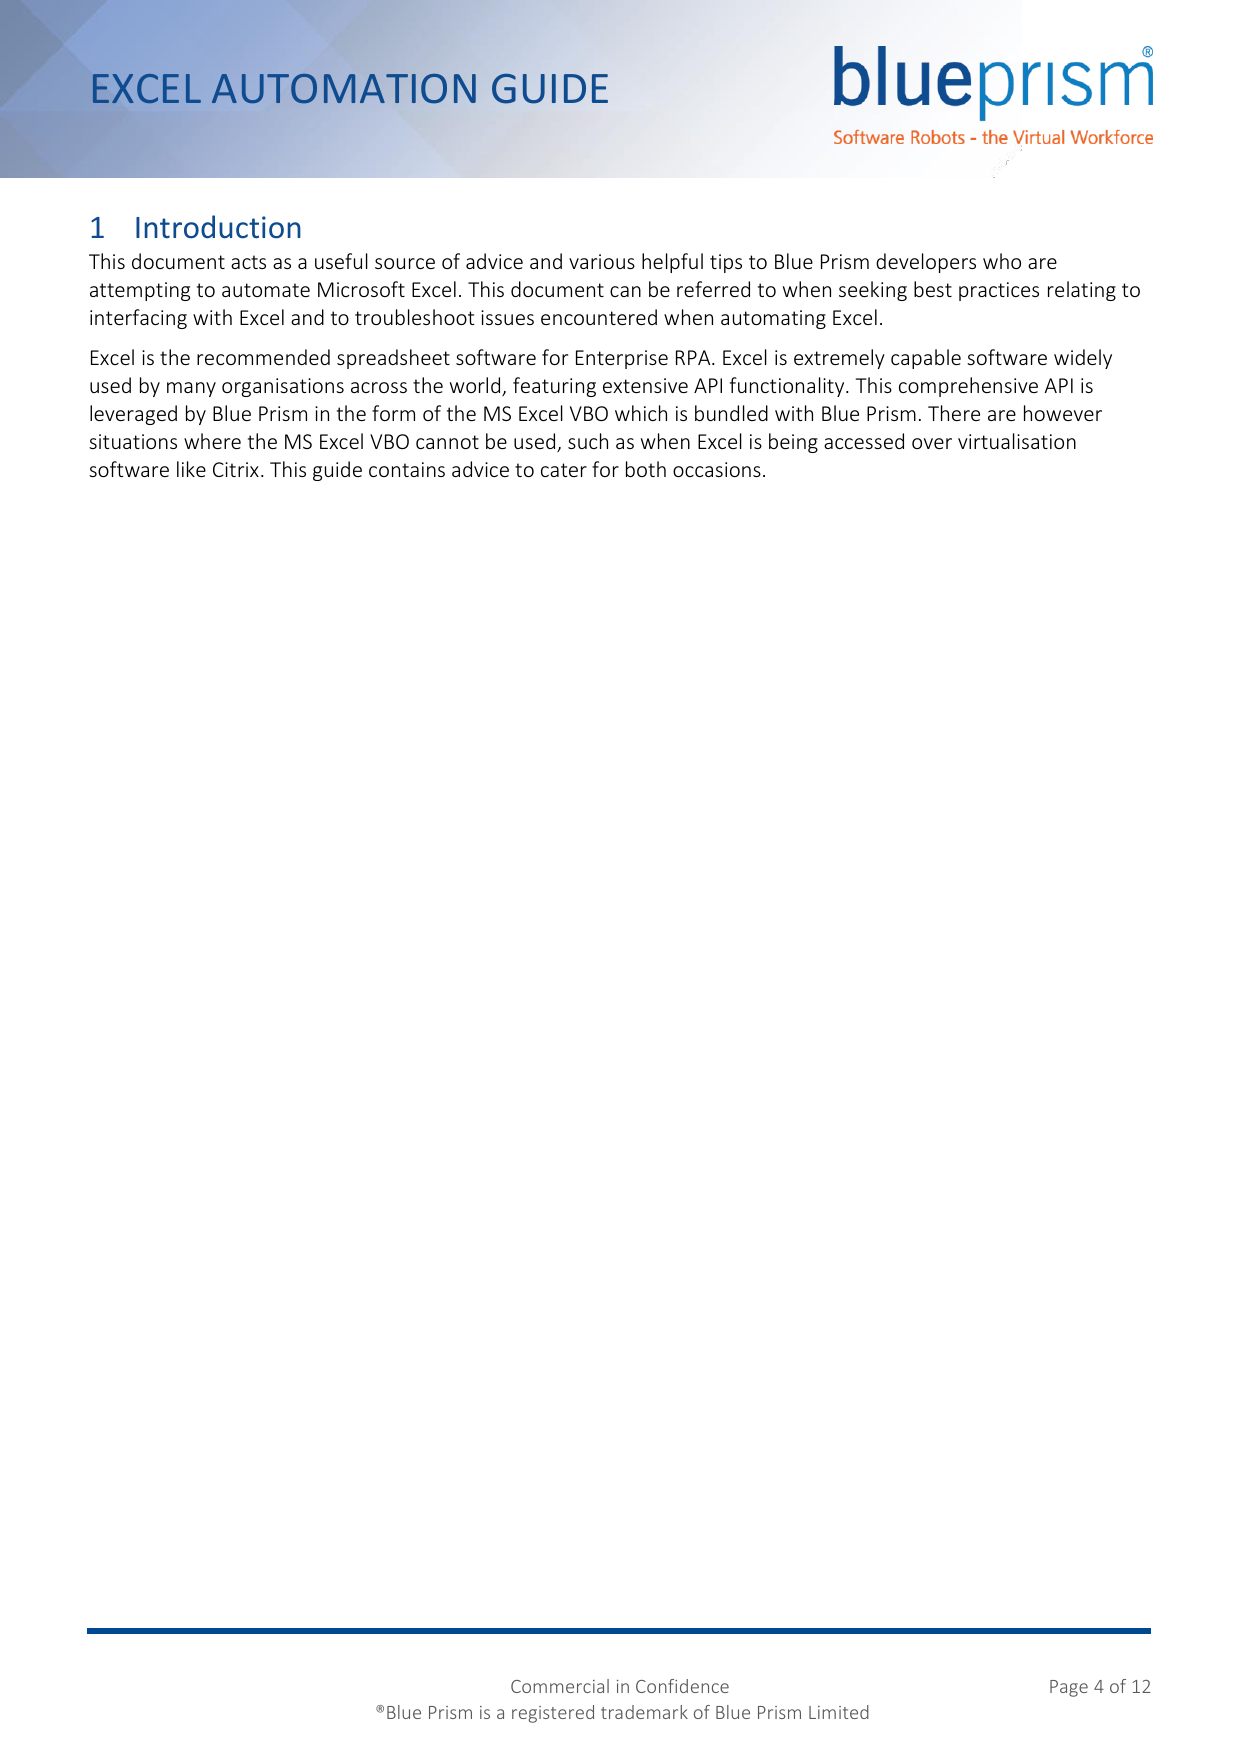 Page 4 of 12 - Blue Prism Excel Automation Guide